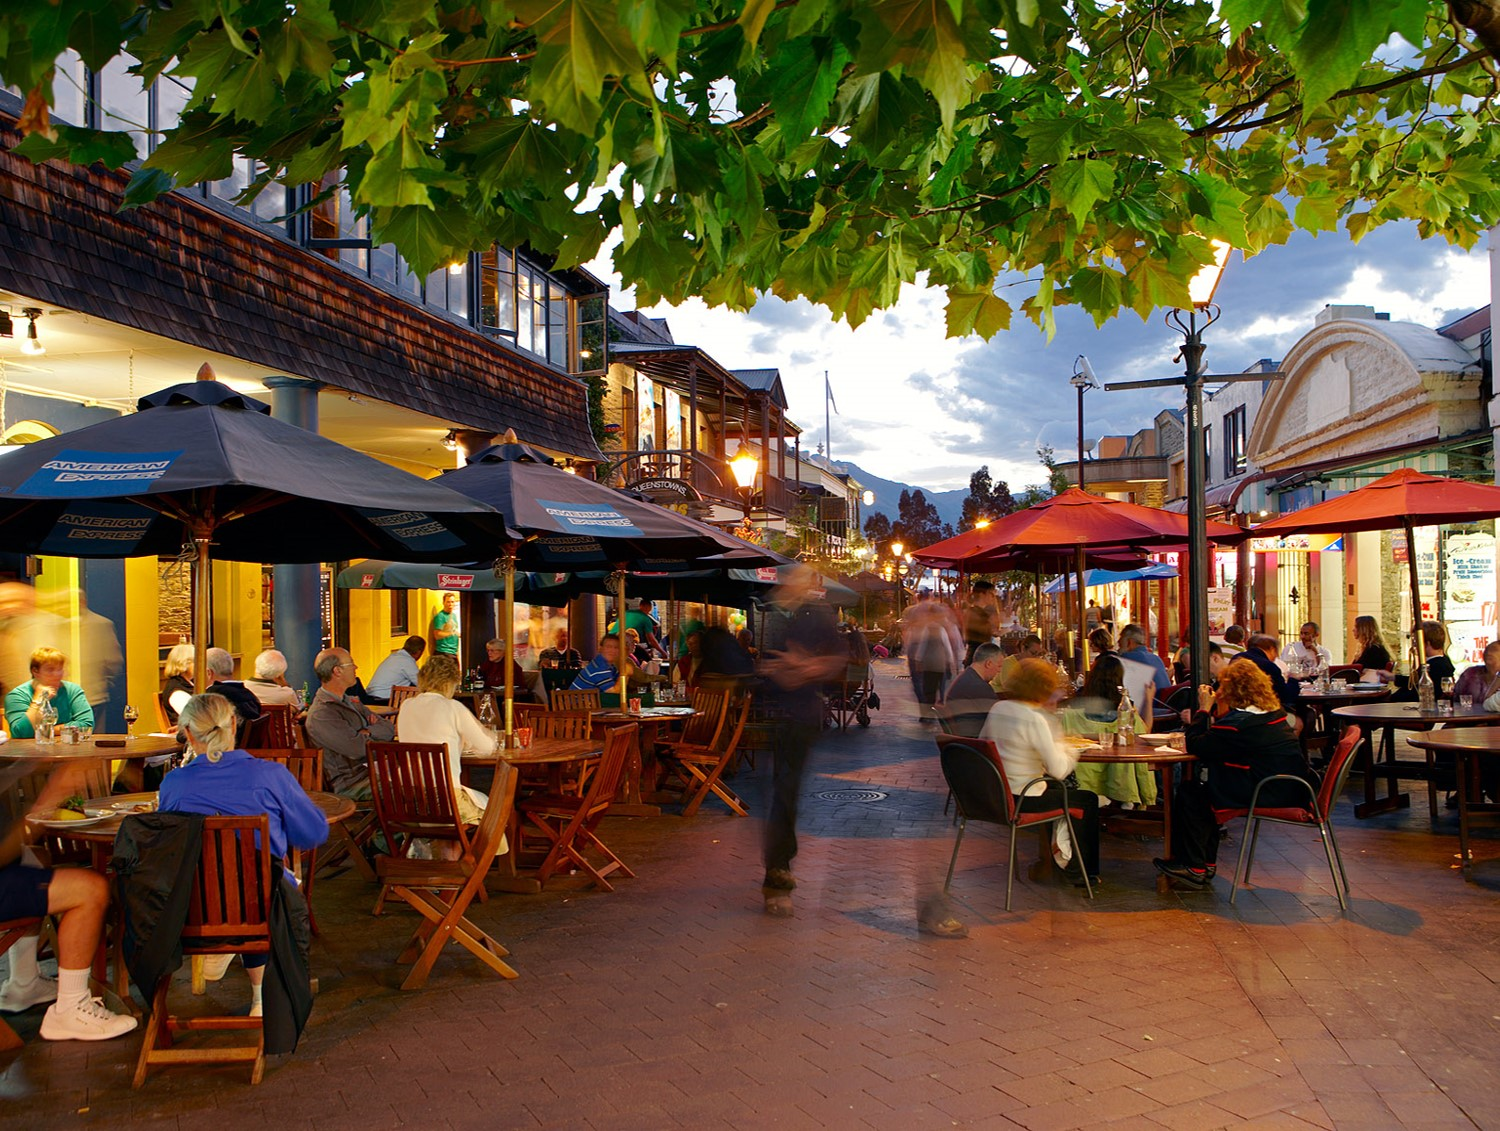 Shops and restaurants in Queenstown, New Zealand